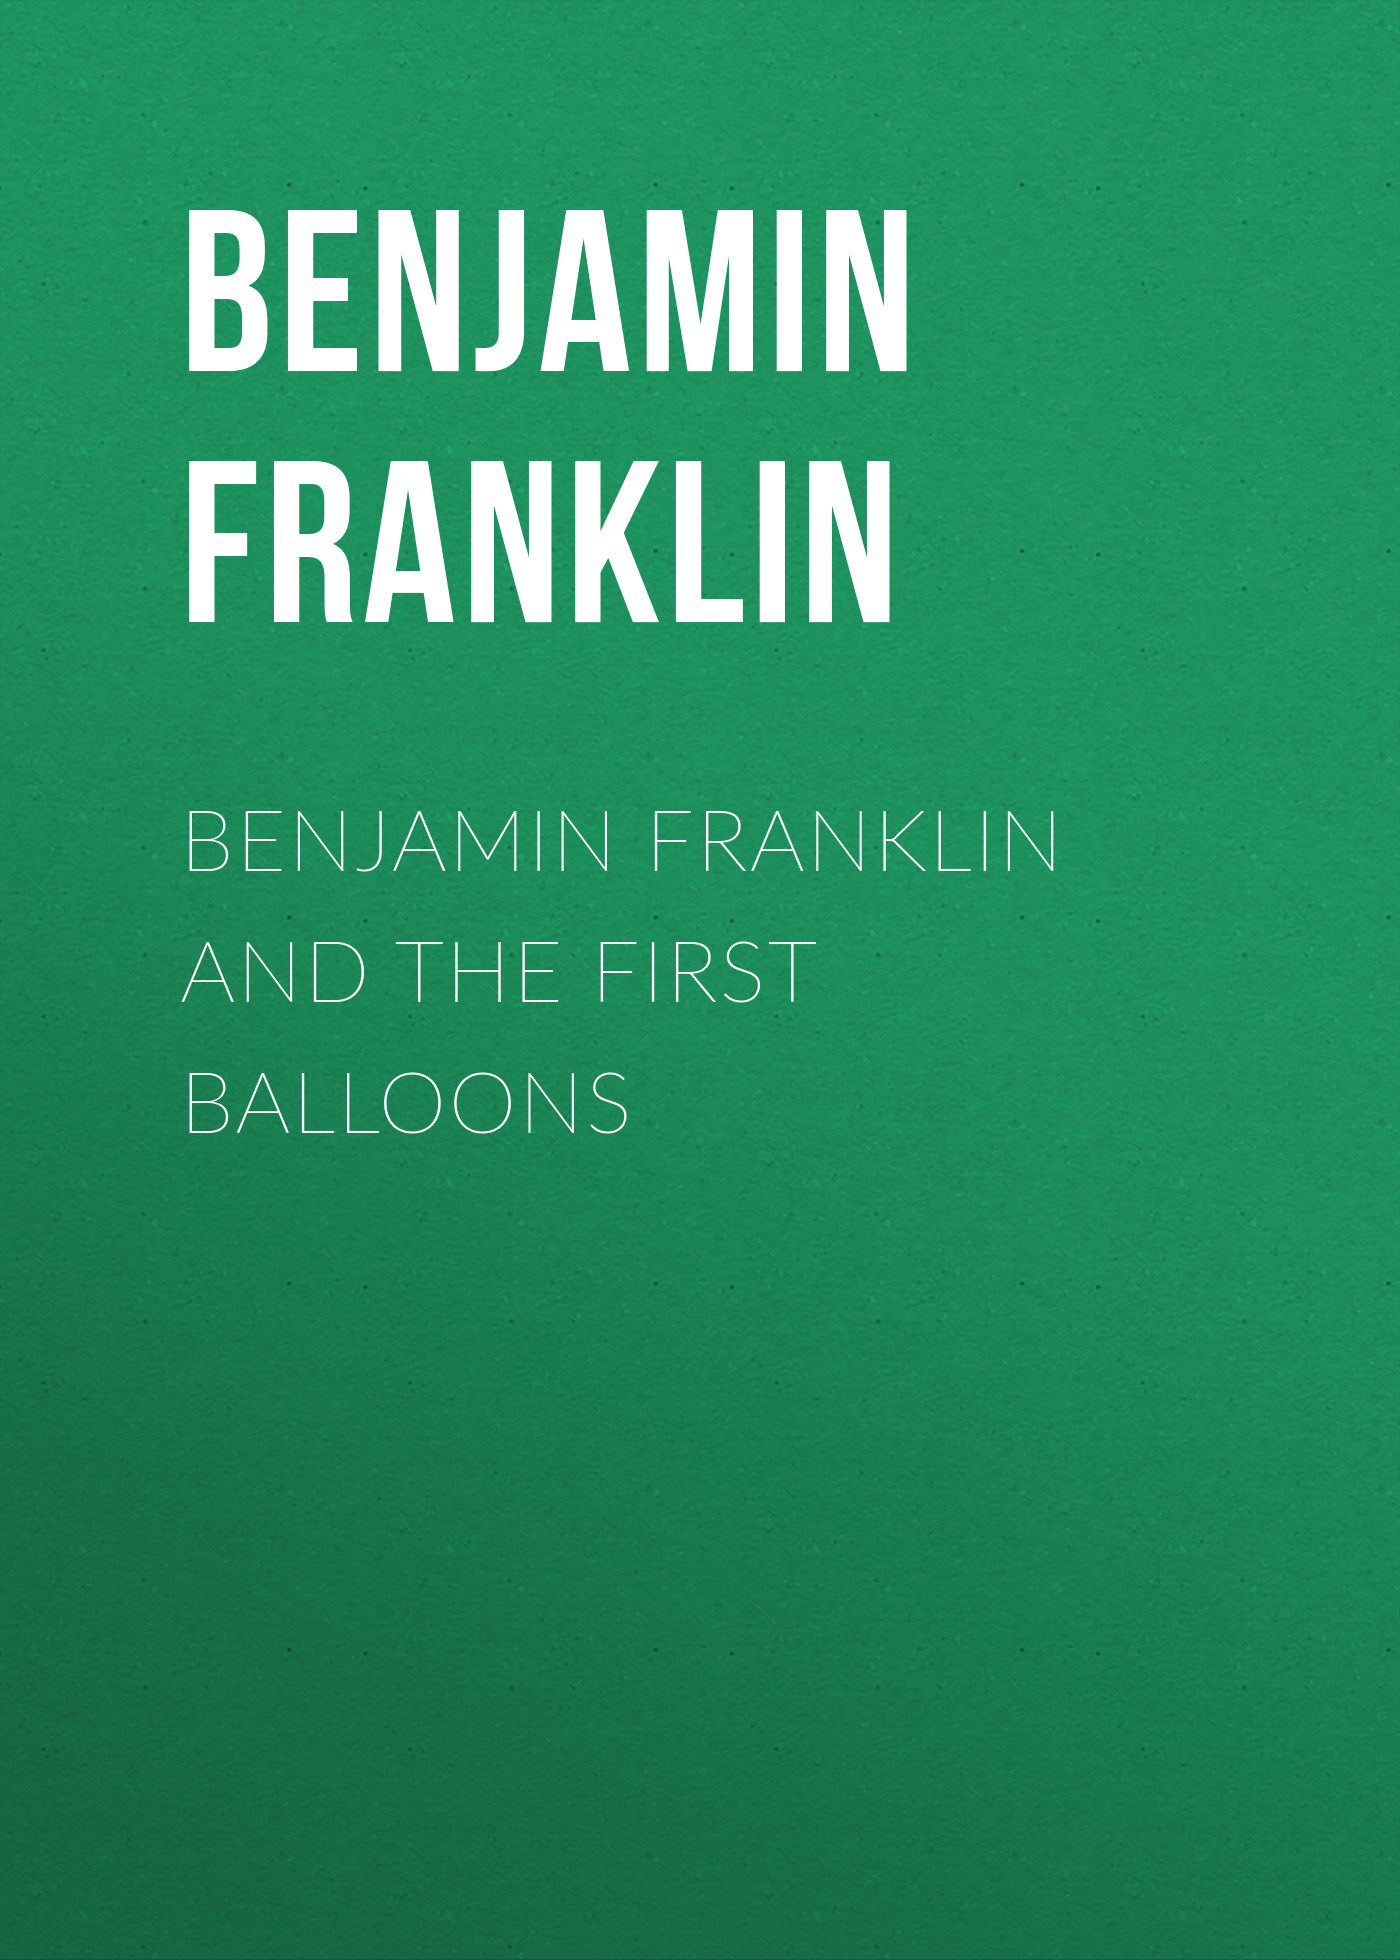 все цены на Бенджамин Франклин Benjamin Franklin and the First Balloons